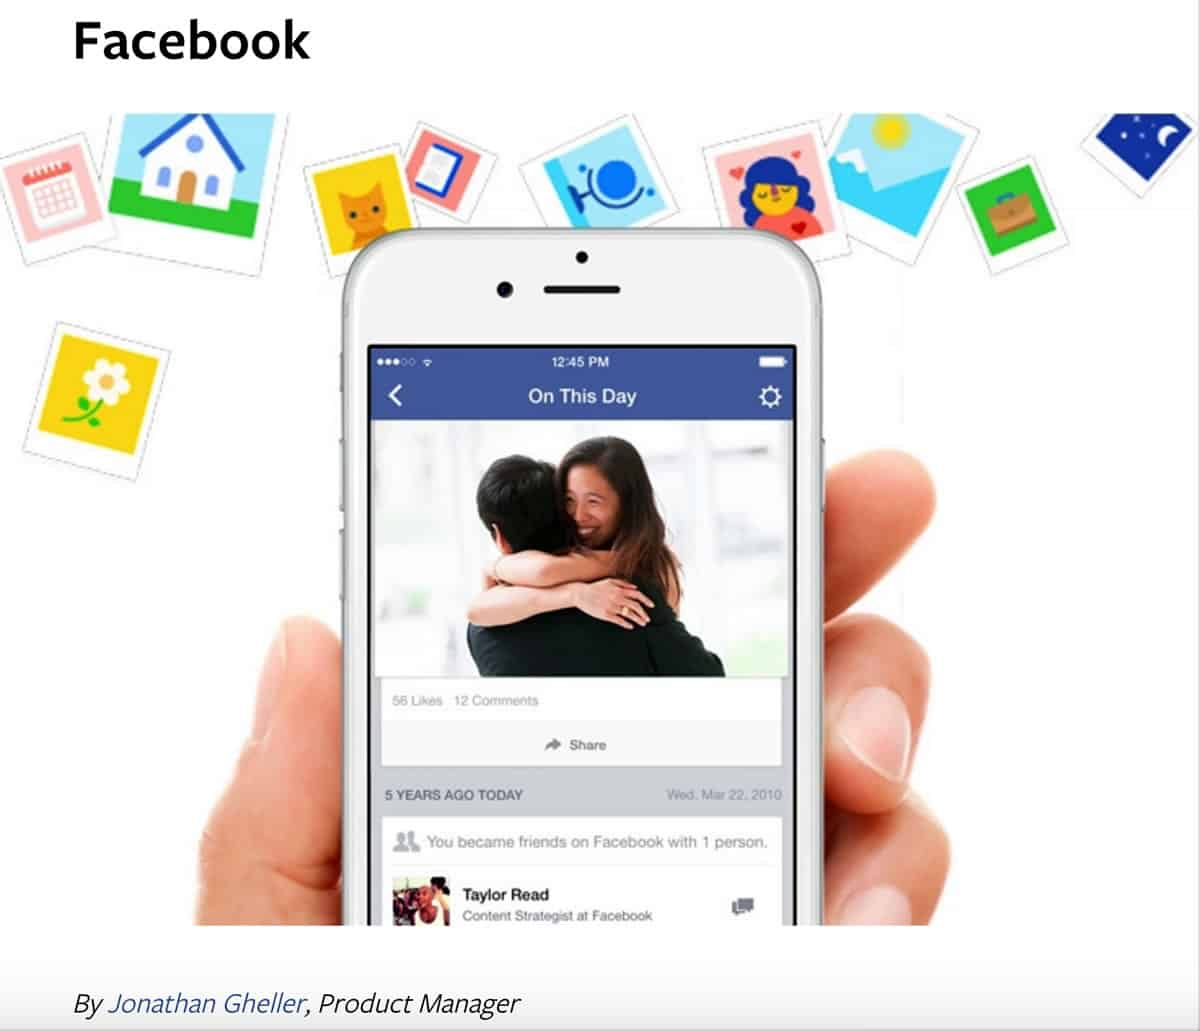 Image of Facebook On This Day Memory on an iPhone of a couple hugging.